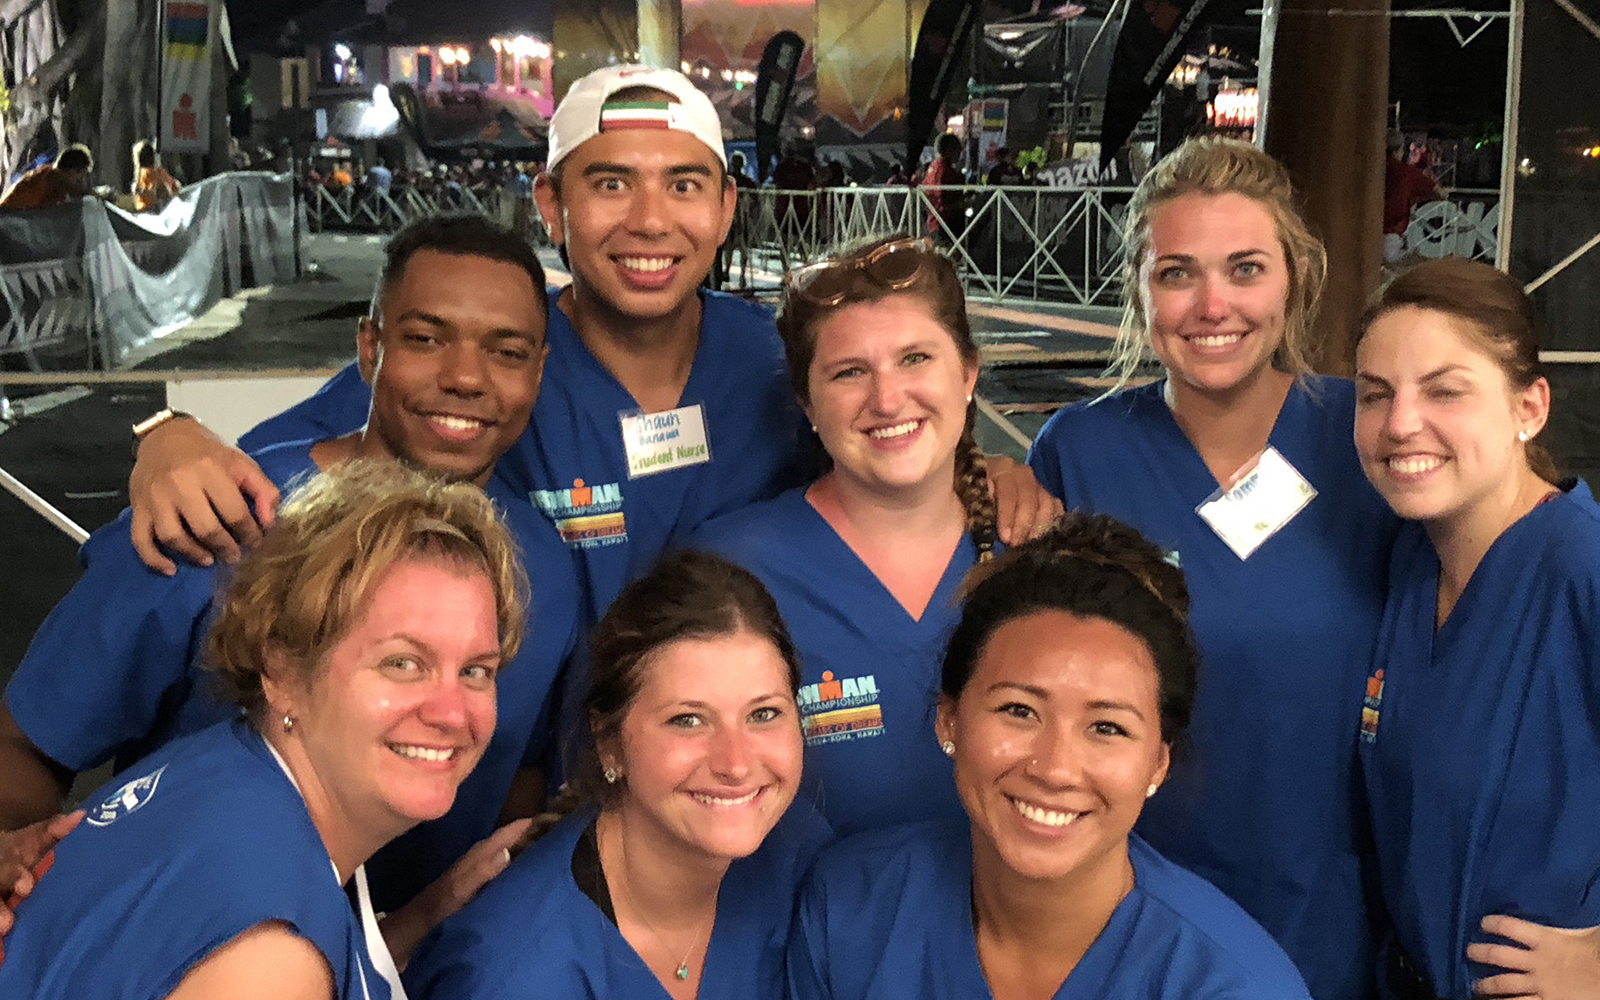 Olivet_School of Graduate and Continuing Studies_Nursing_students_ABSN_Hawaii Ironman 2018_Web3.jpg